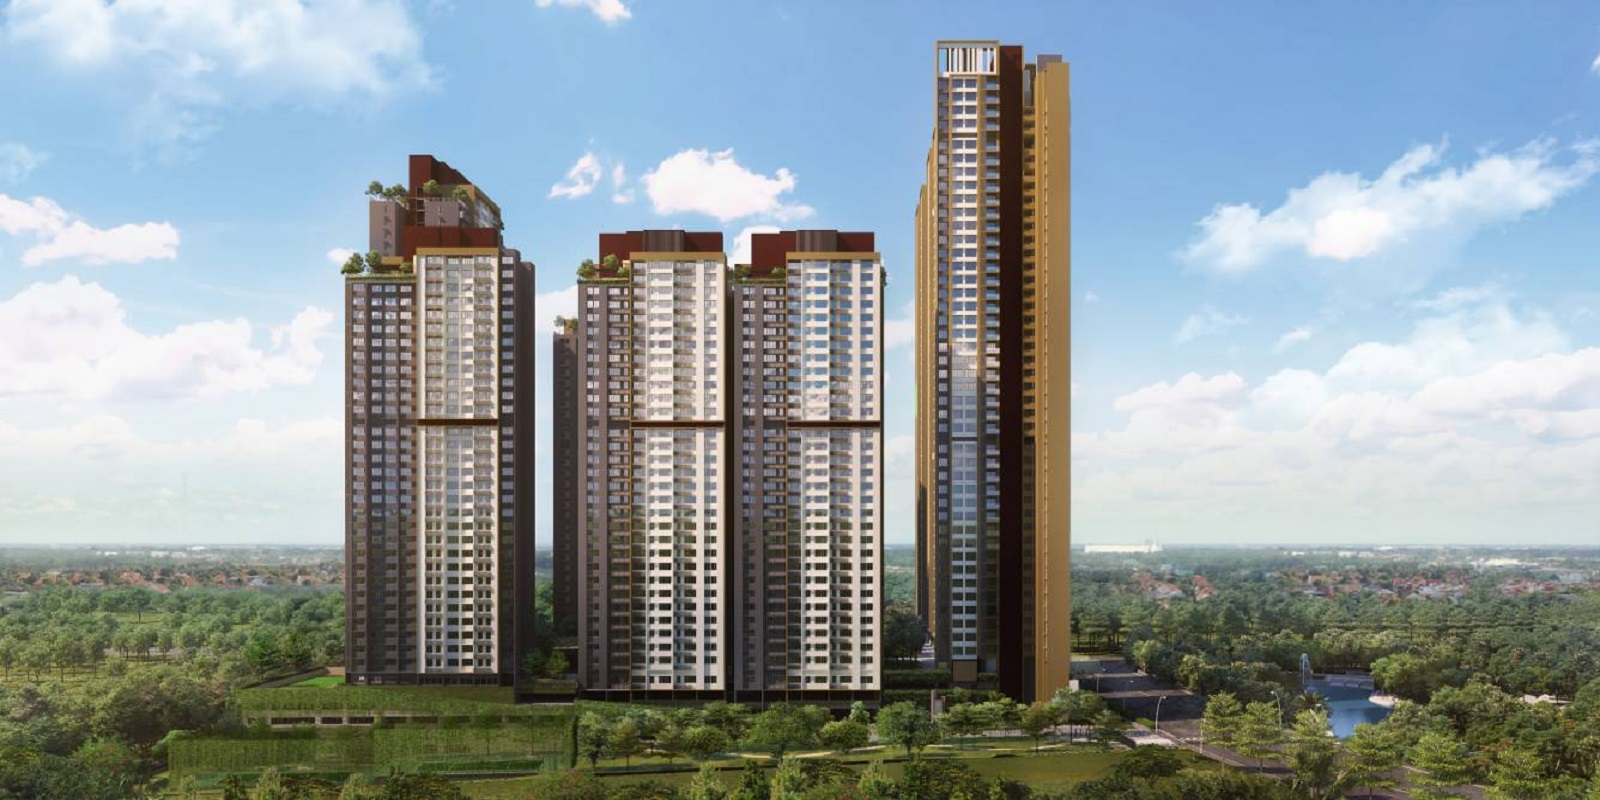 kalpataru launch code starlight sector 5 wing b project large image2